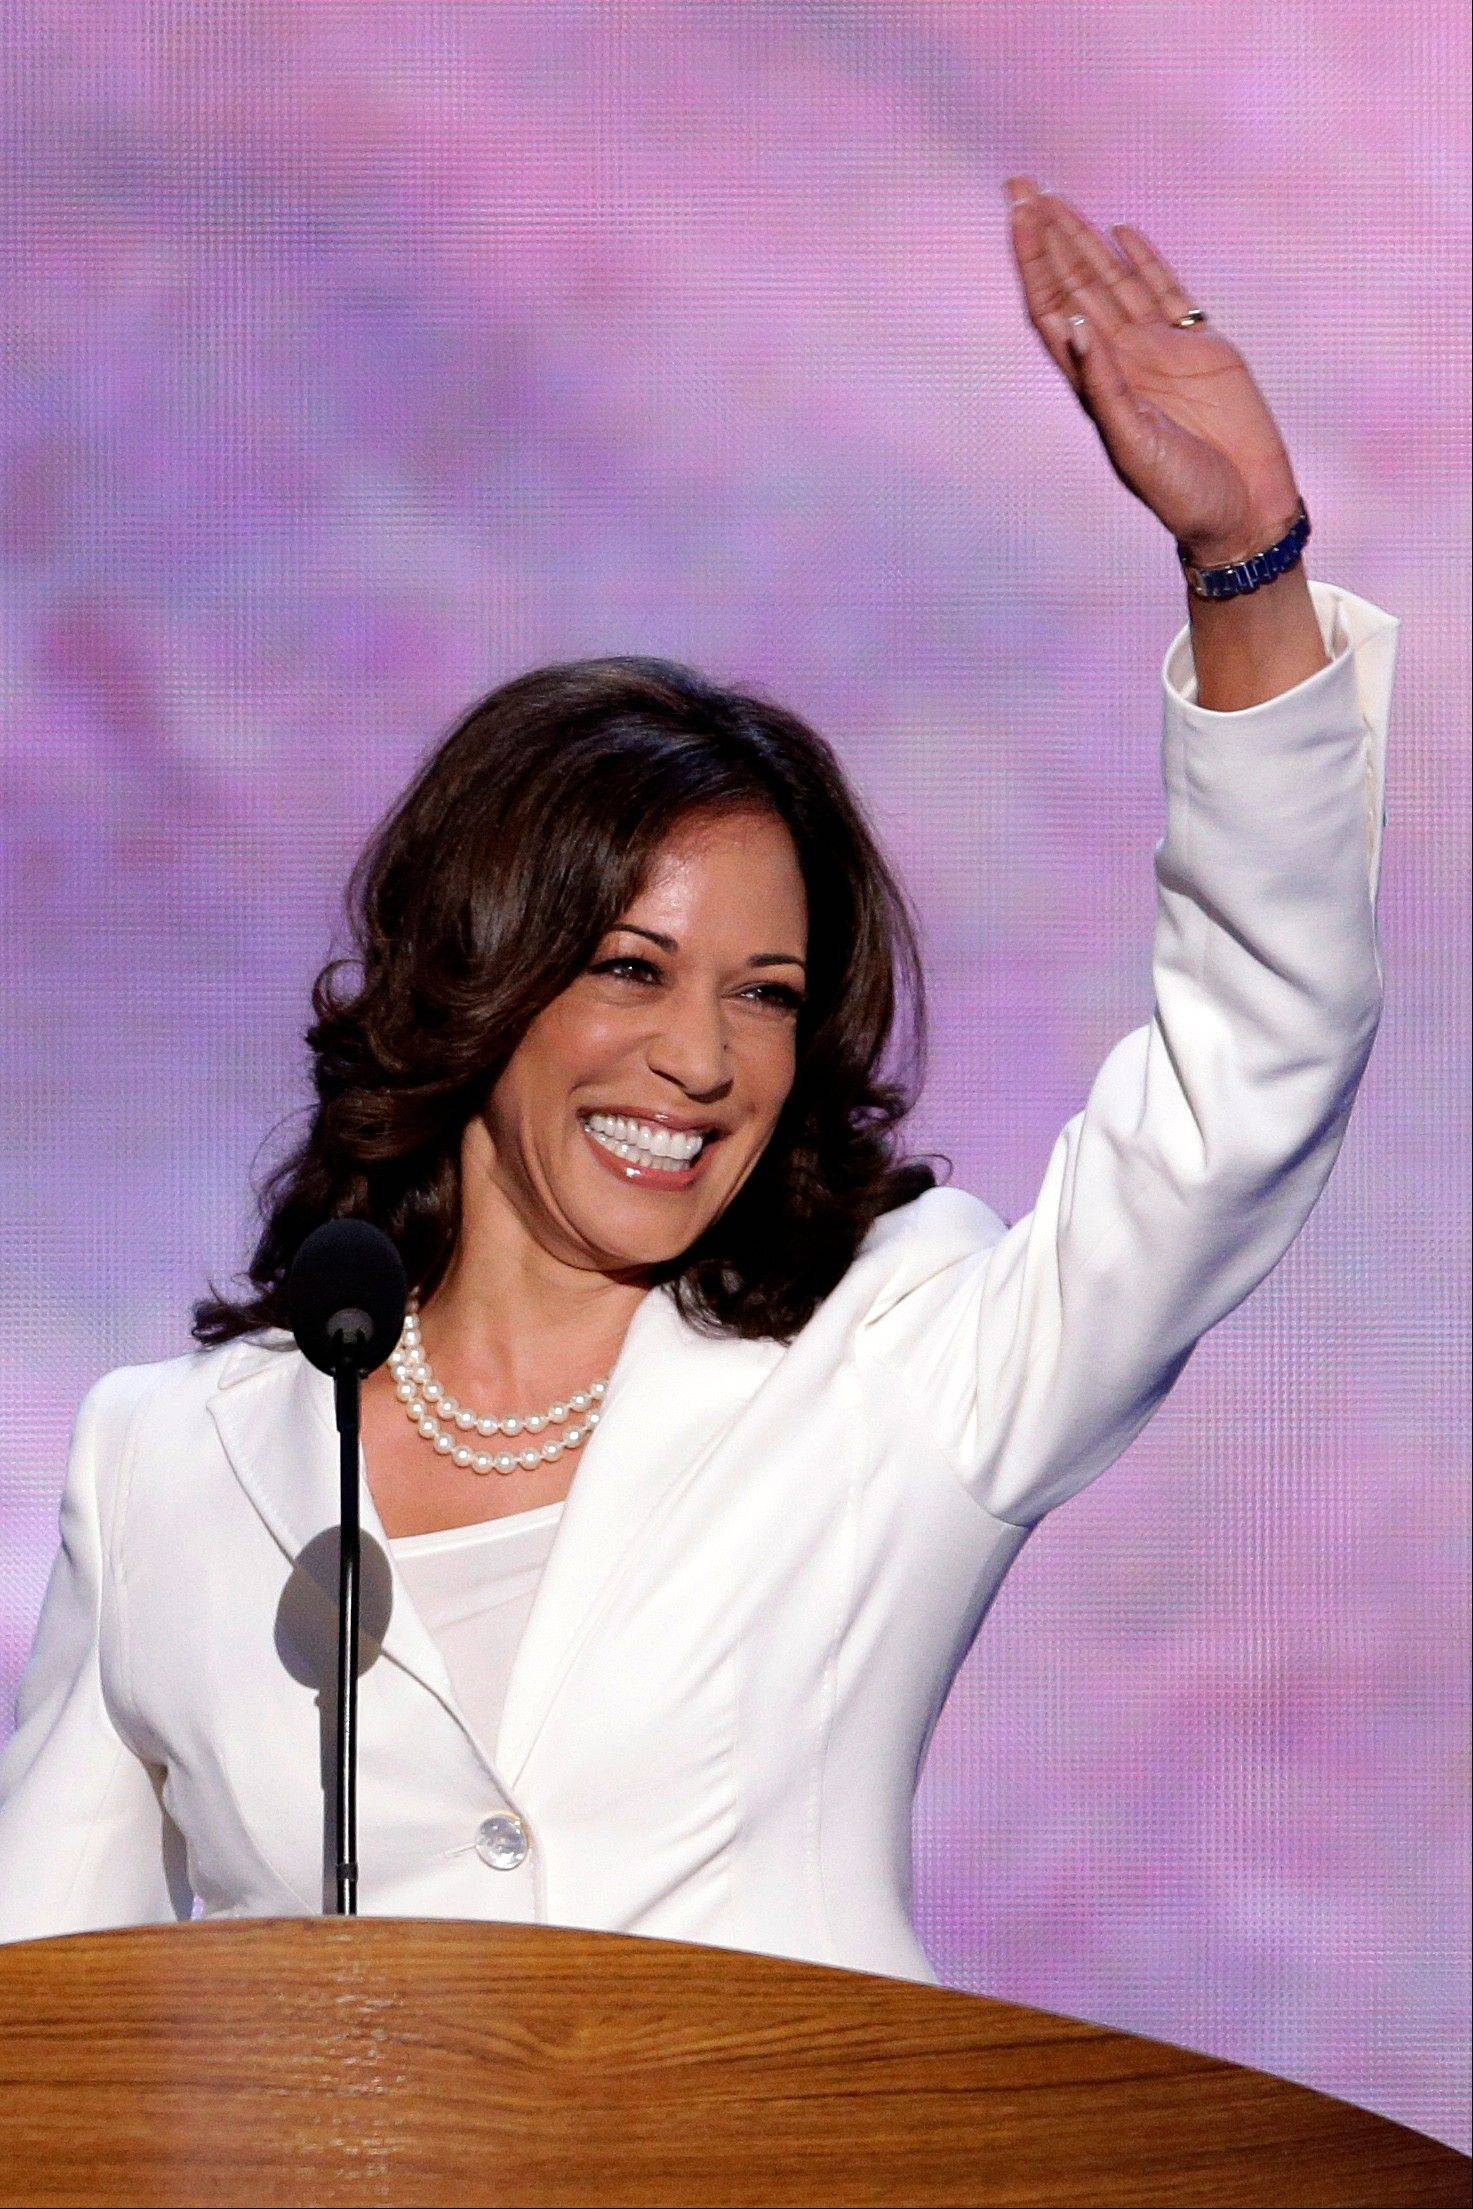 California Attorney General Kamala D. Harris waves before addressing the Democratic National Convention in Charlotte, N.C., on Wednesday, Sept. 5, 2012.